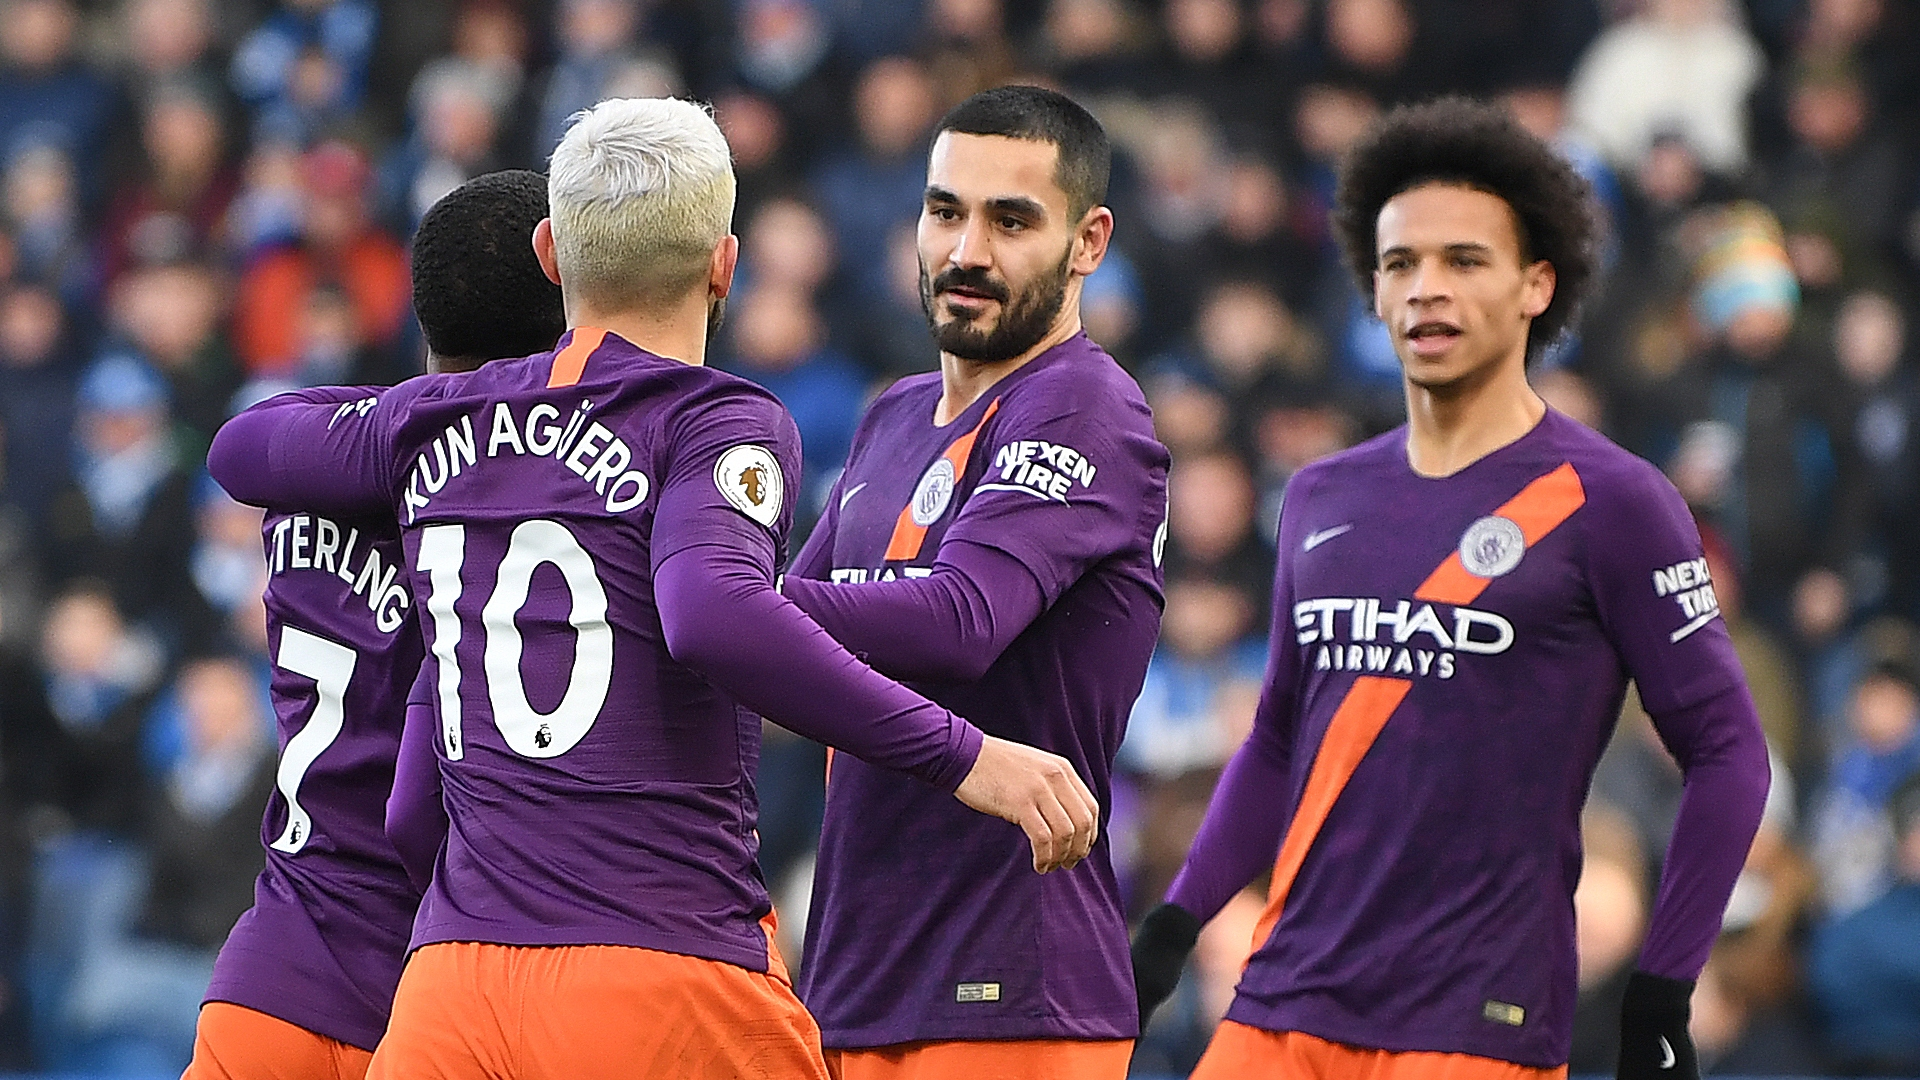 Man City celebrate vs Huddersfield